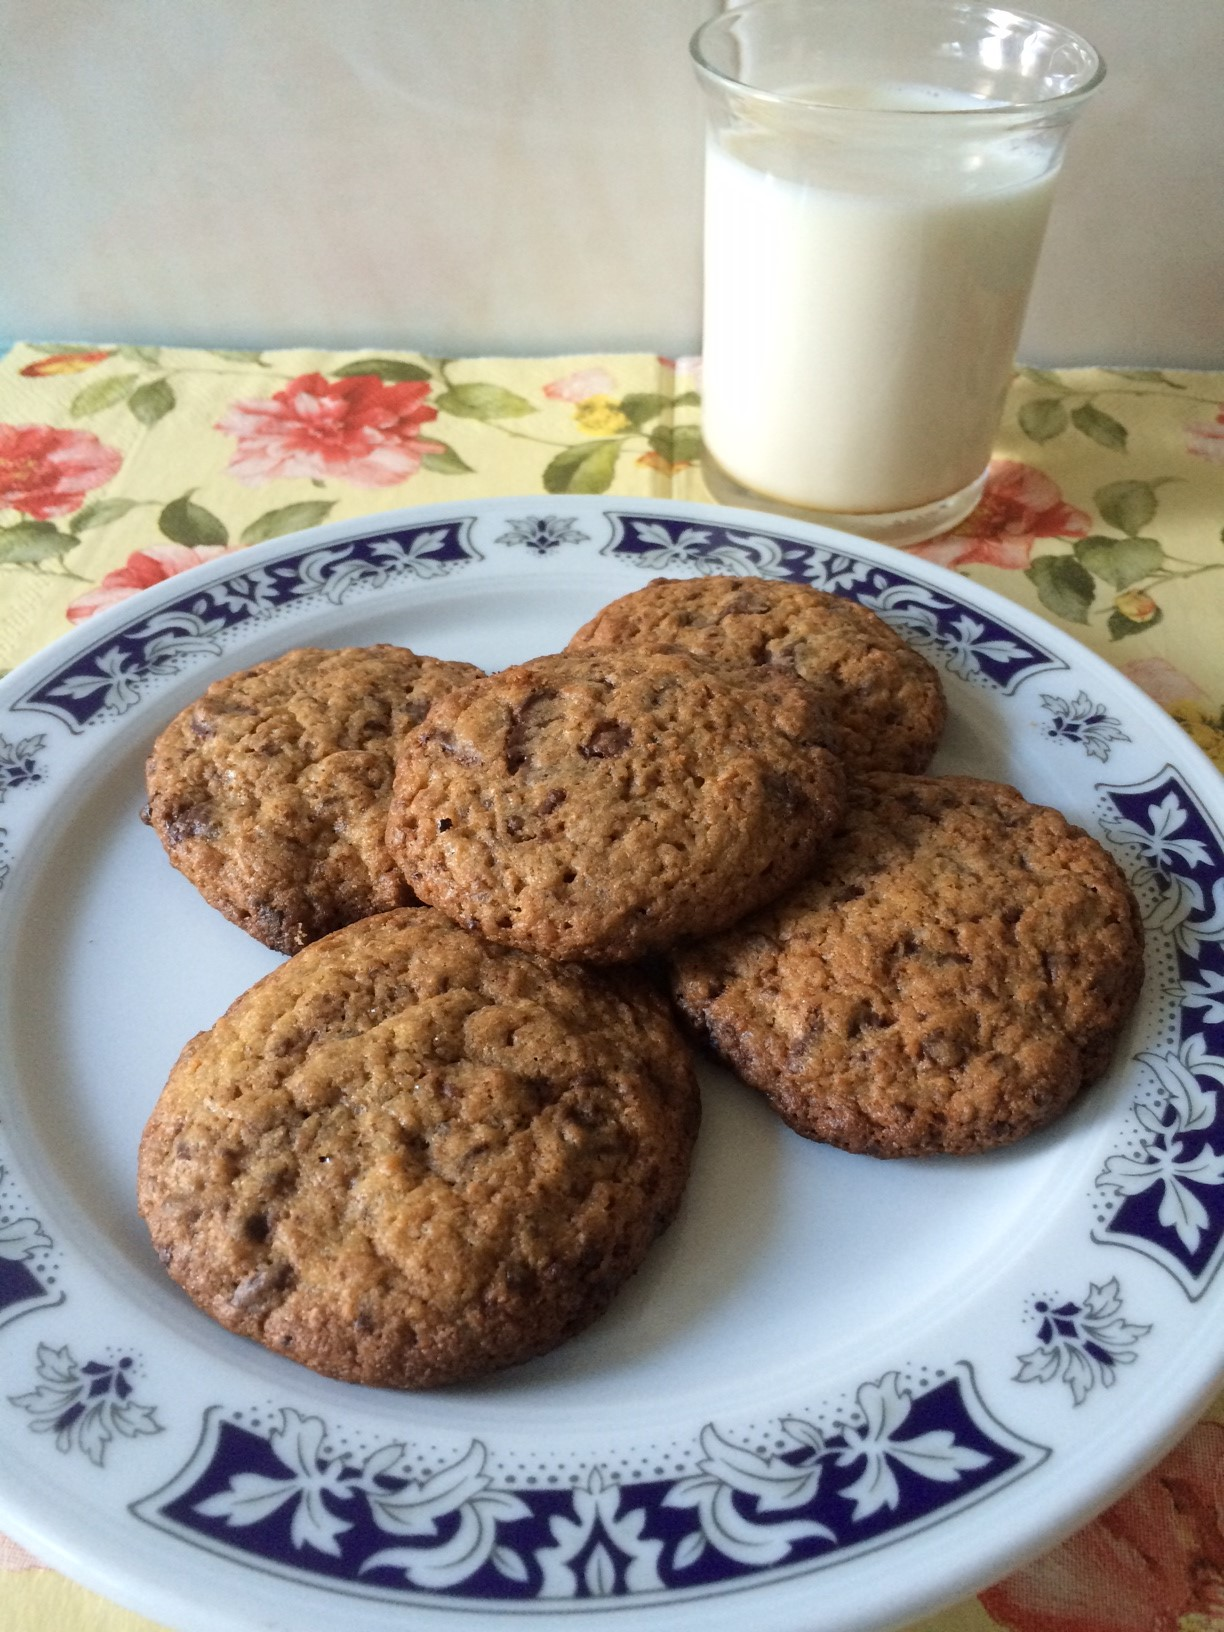 Cookies integrales con Thermomix® (galletas integrales con pepitas de chocolate)